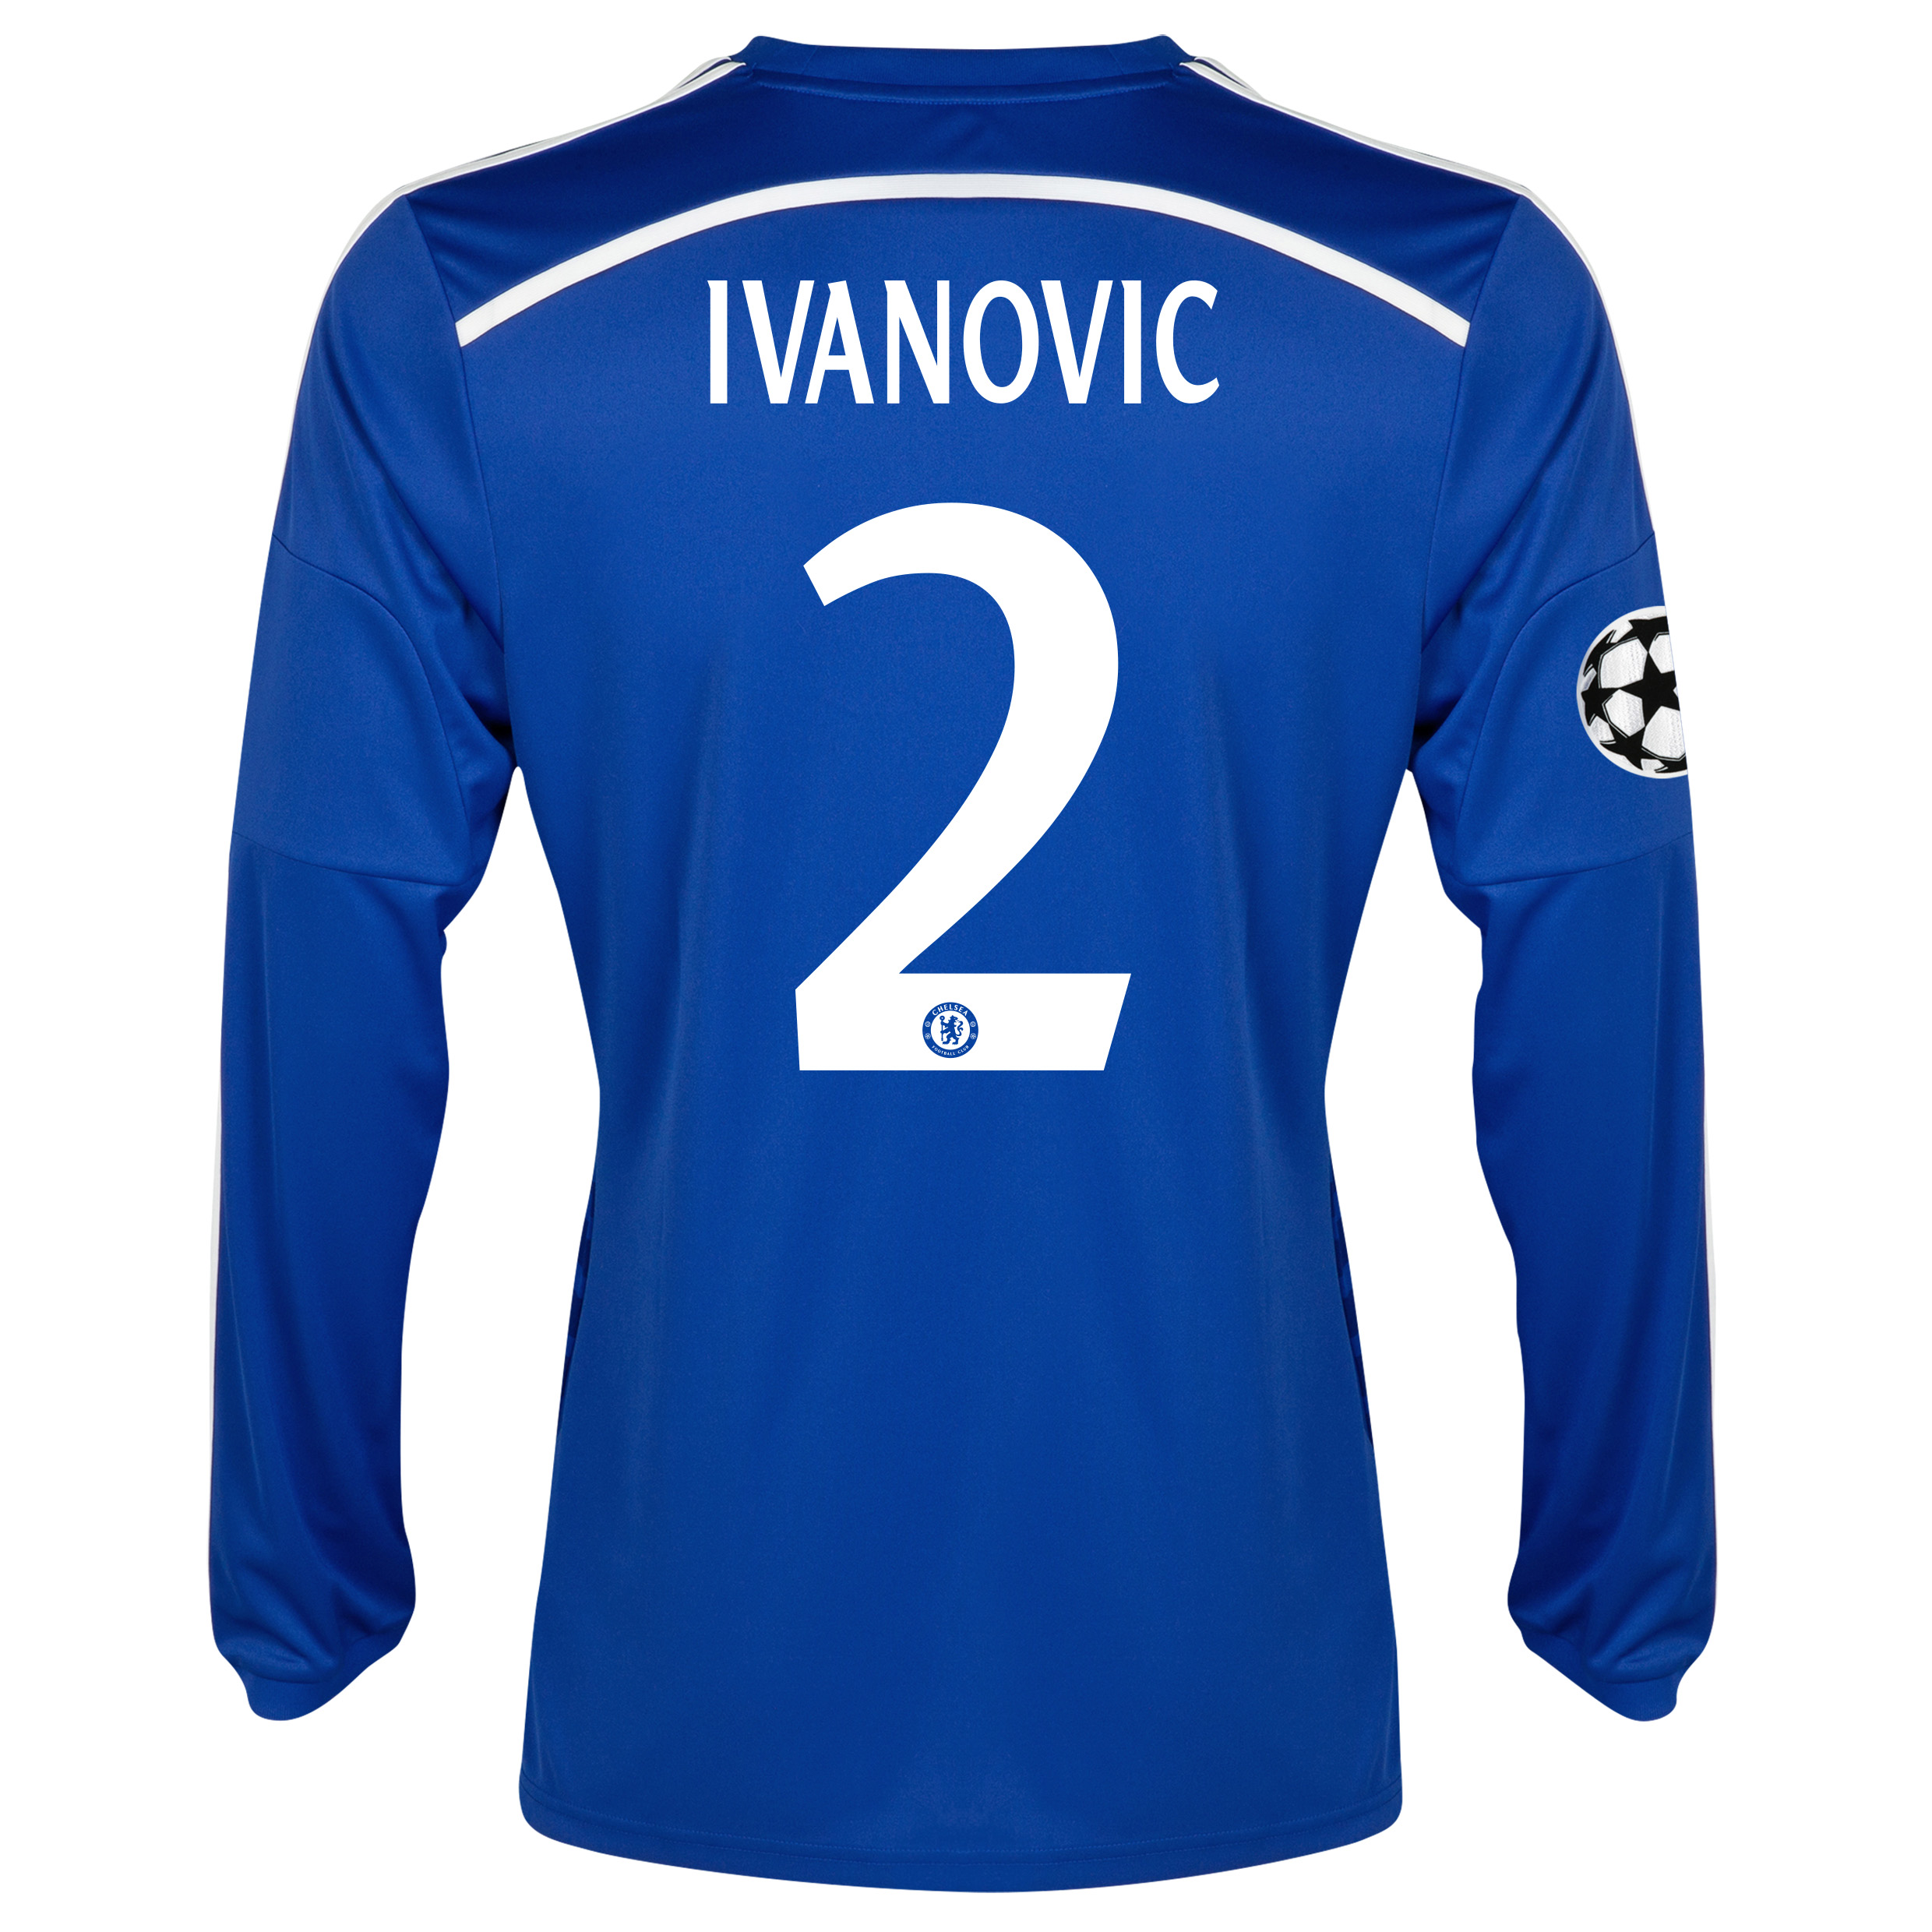 Chelsea UEFA Champions League Home Shirt 2014/15 - Long Sleeve Blue with Ivanovic 2 printing